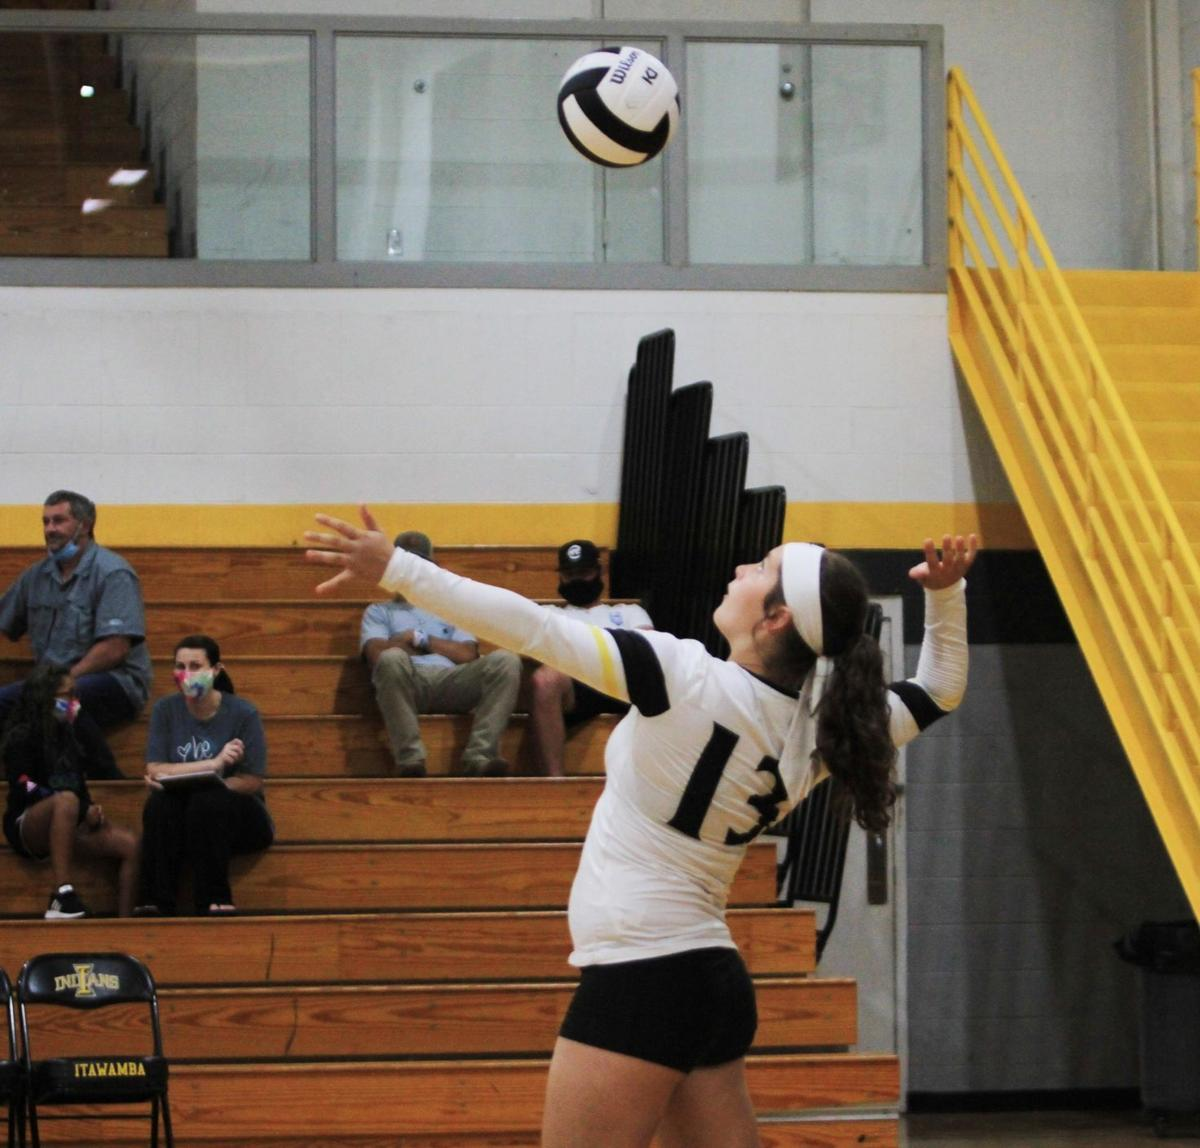 IAHS volleyball pic 2